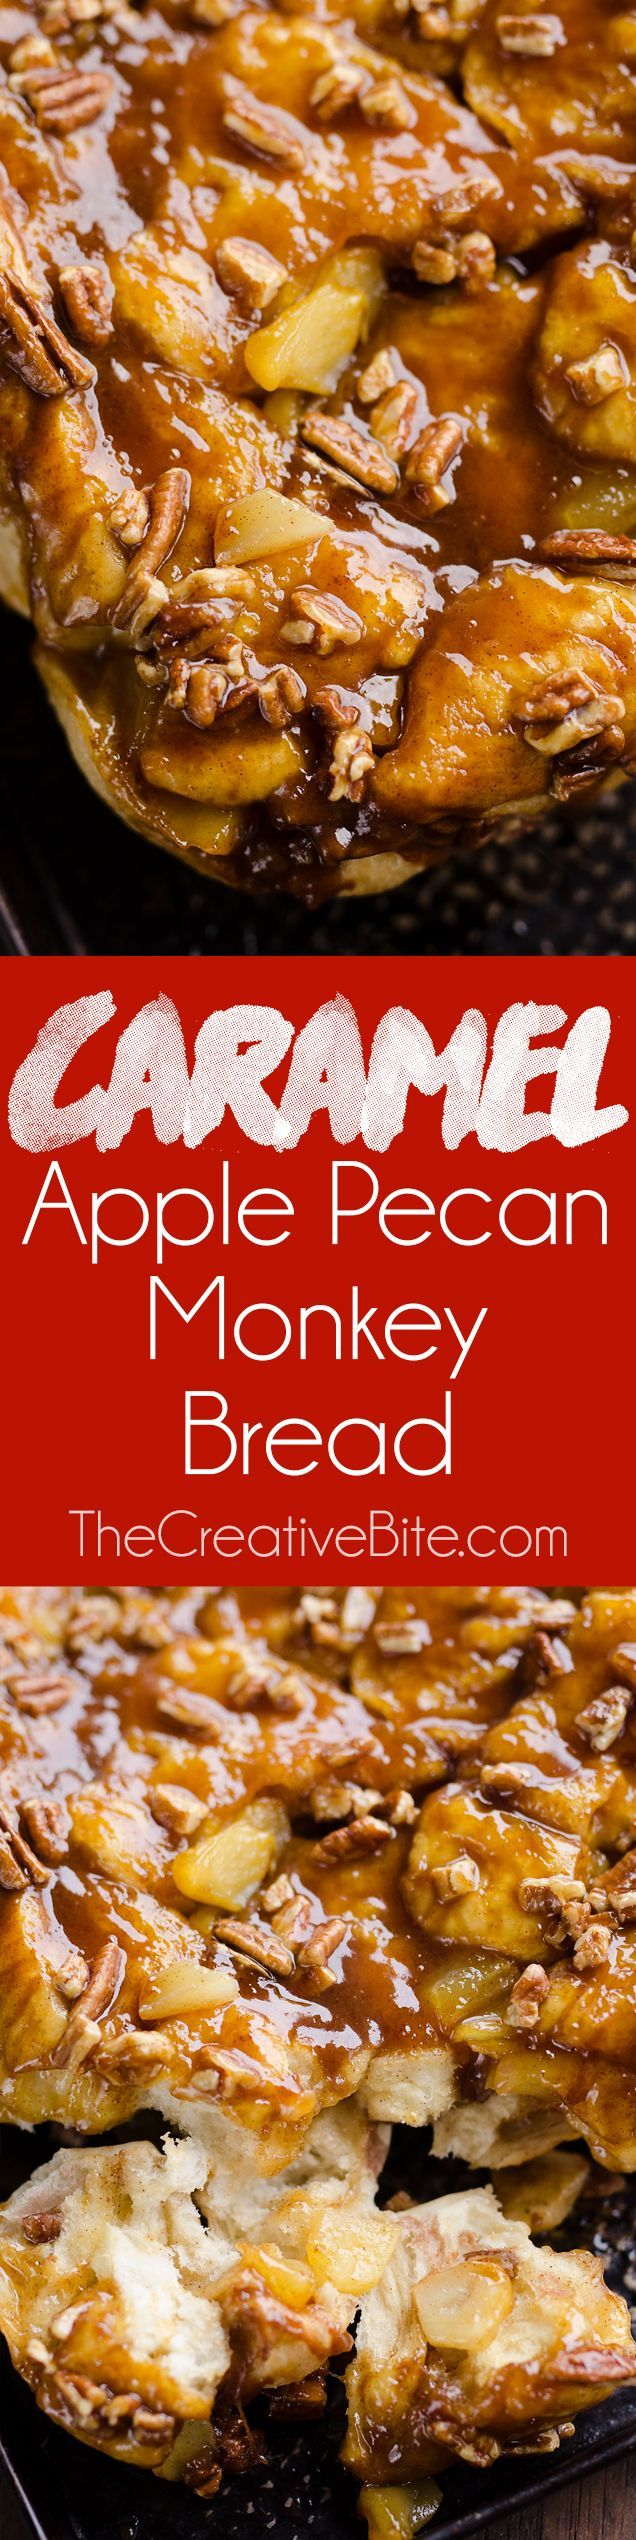 Caramel Apple Pecan Monkey Bread is a family favorite brunch recipe that you need to try! Soft bread is tossed with a sweet caramel sauce, tart apples and crunchy pecans for a sweet morning treat you are sure to love.